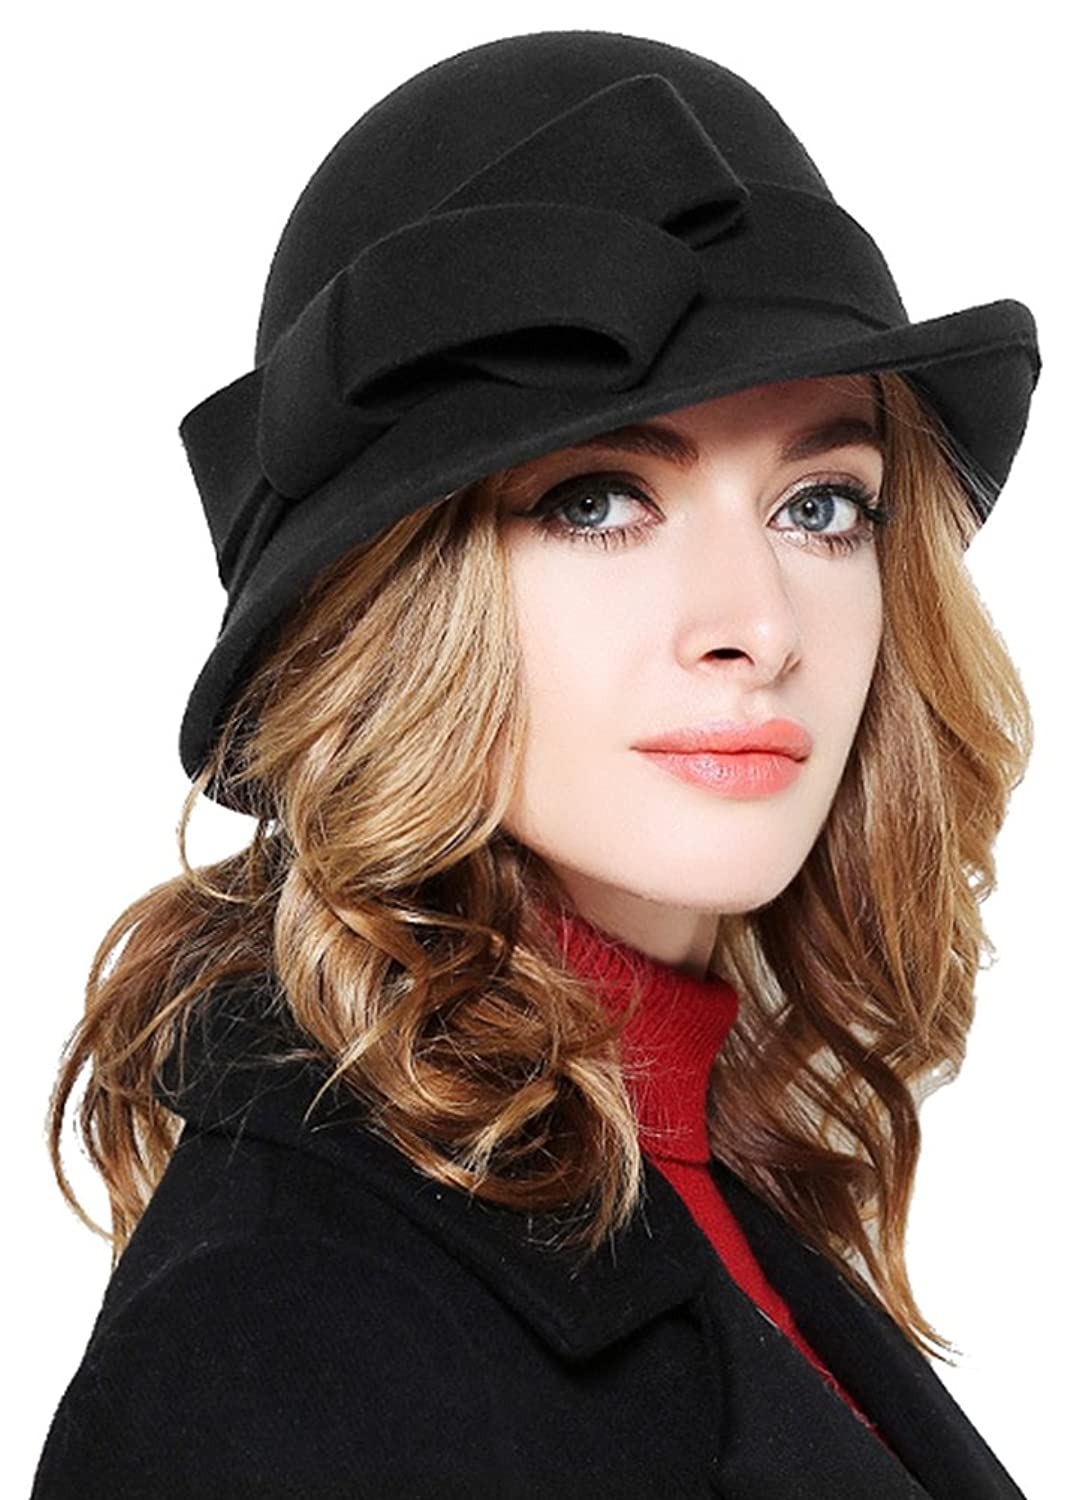 e8ceb89d15ea9 1940s Hats History Bellady Women Solid Color Winter Hat 100% Wool Cloche  Bucket with Bow